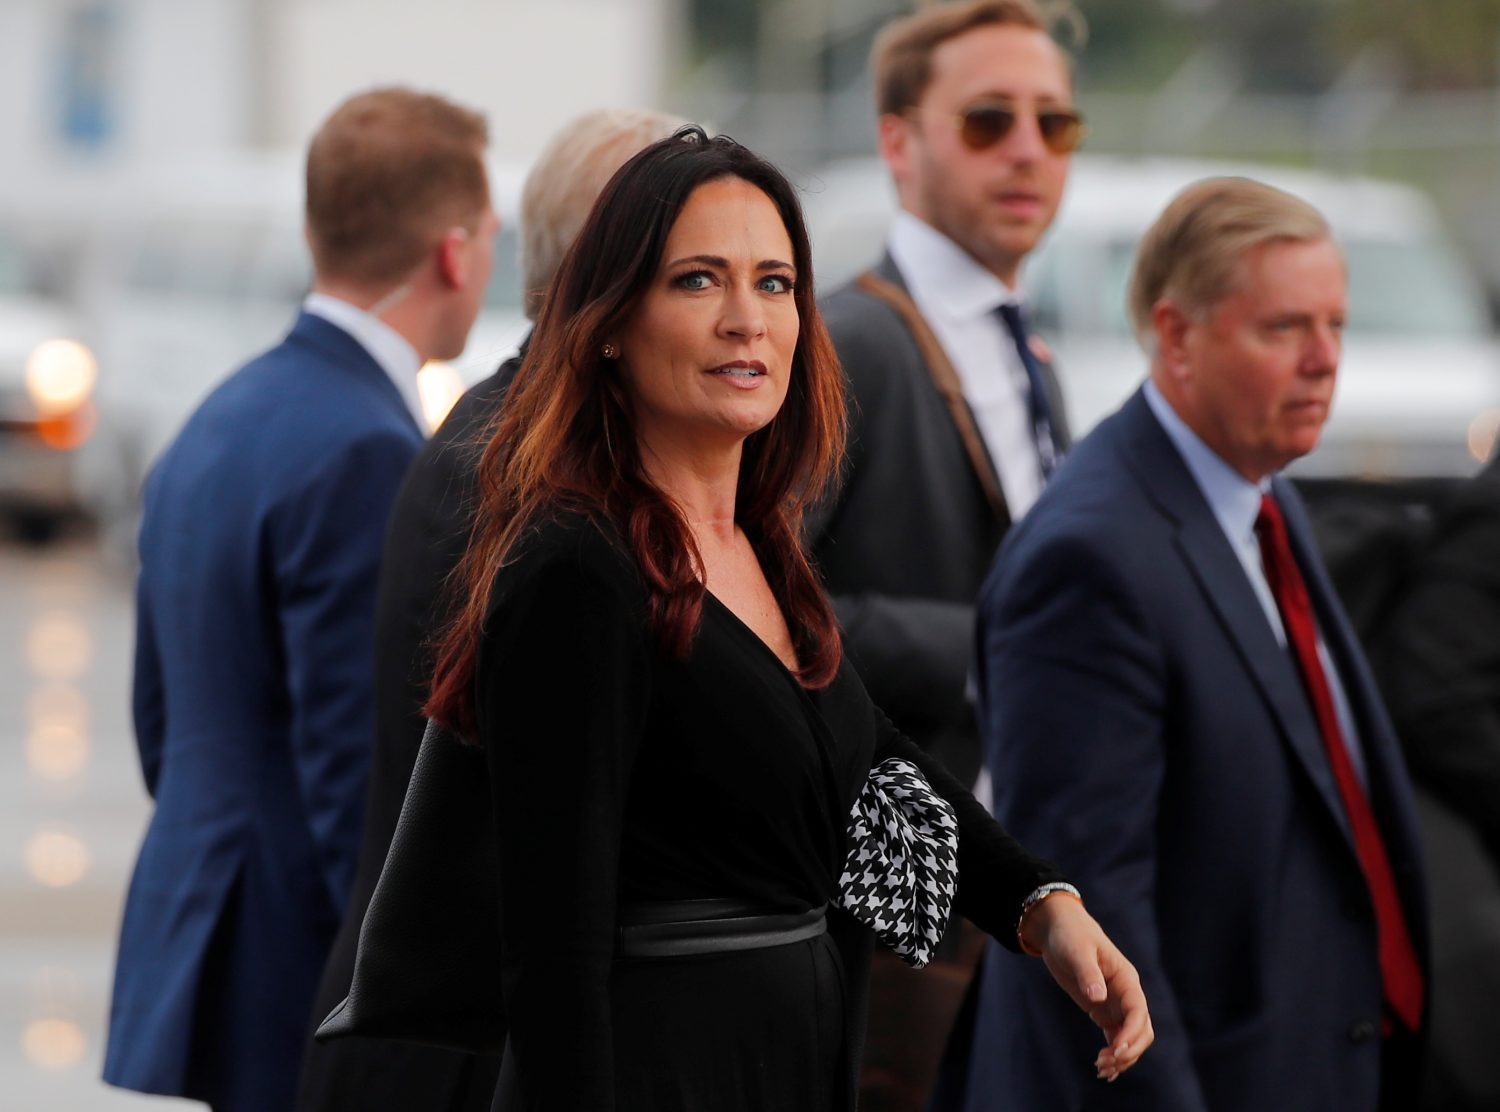 Stephanie Grisham, spokesperson for first lady Melania Trump, arrives for a campaign rally with U.S. President Donald Trump in Orlando, Florida, U.S., June 18, 2019. REUTERS/Carlos Barria